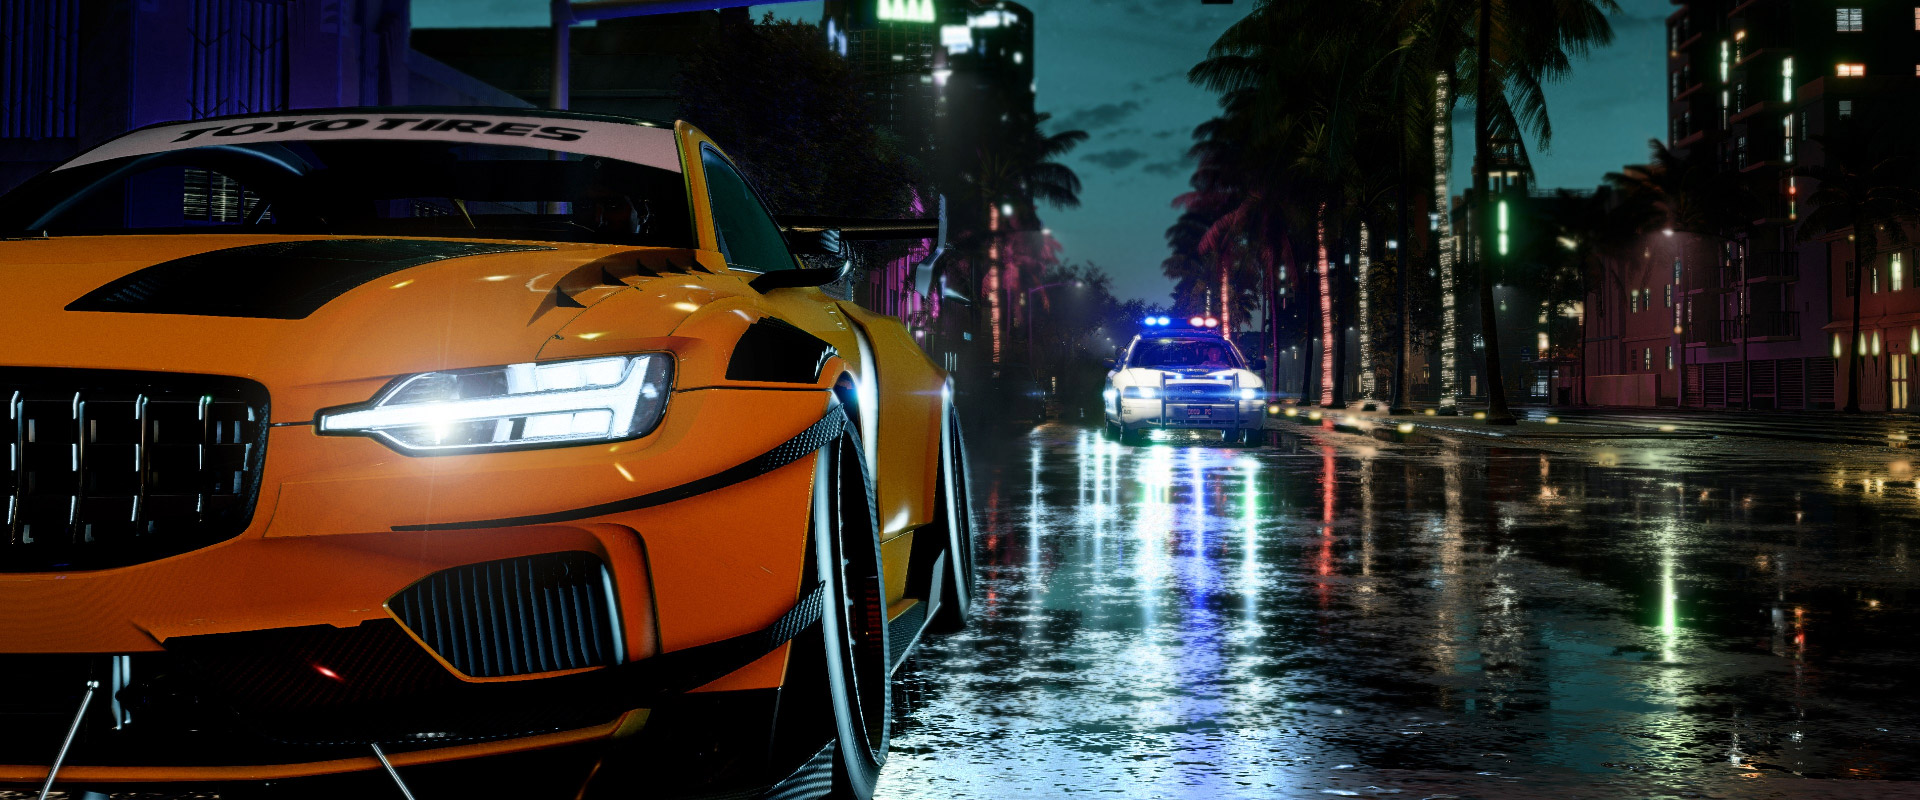 Need for Speed Heat launch trailer reminds us it's out soon screenshot